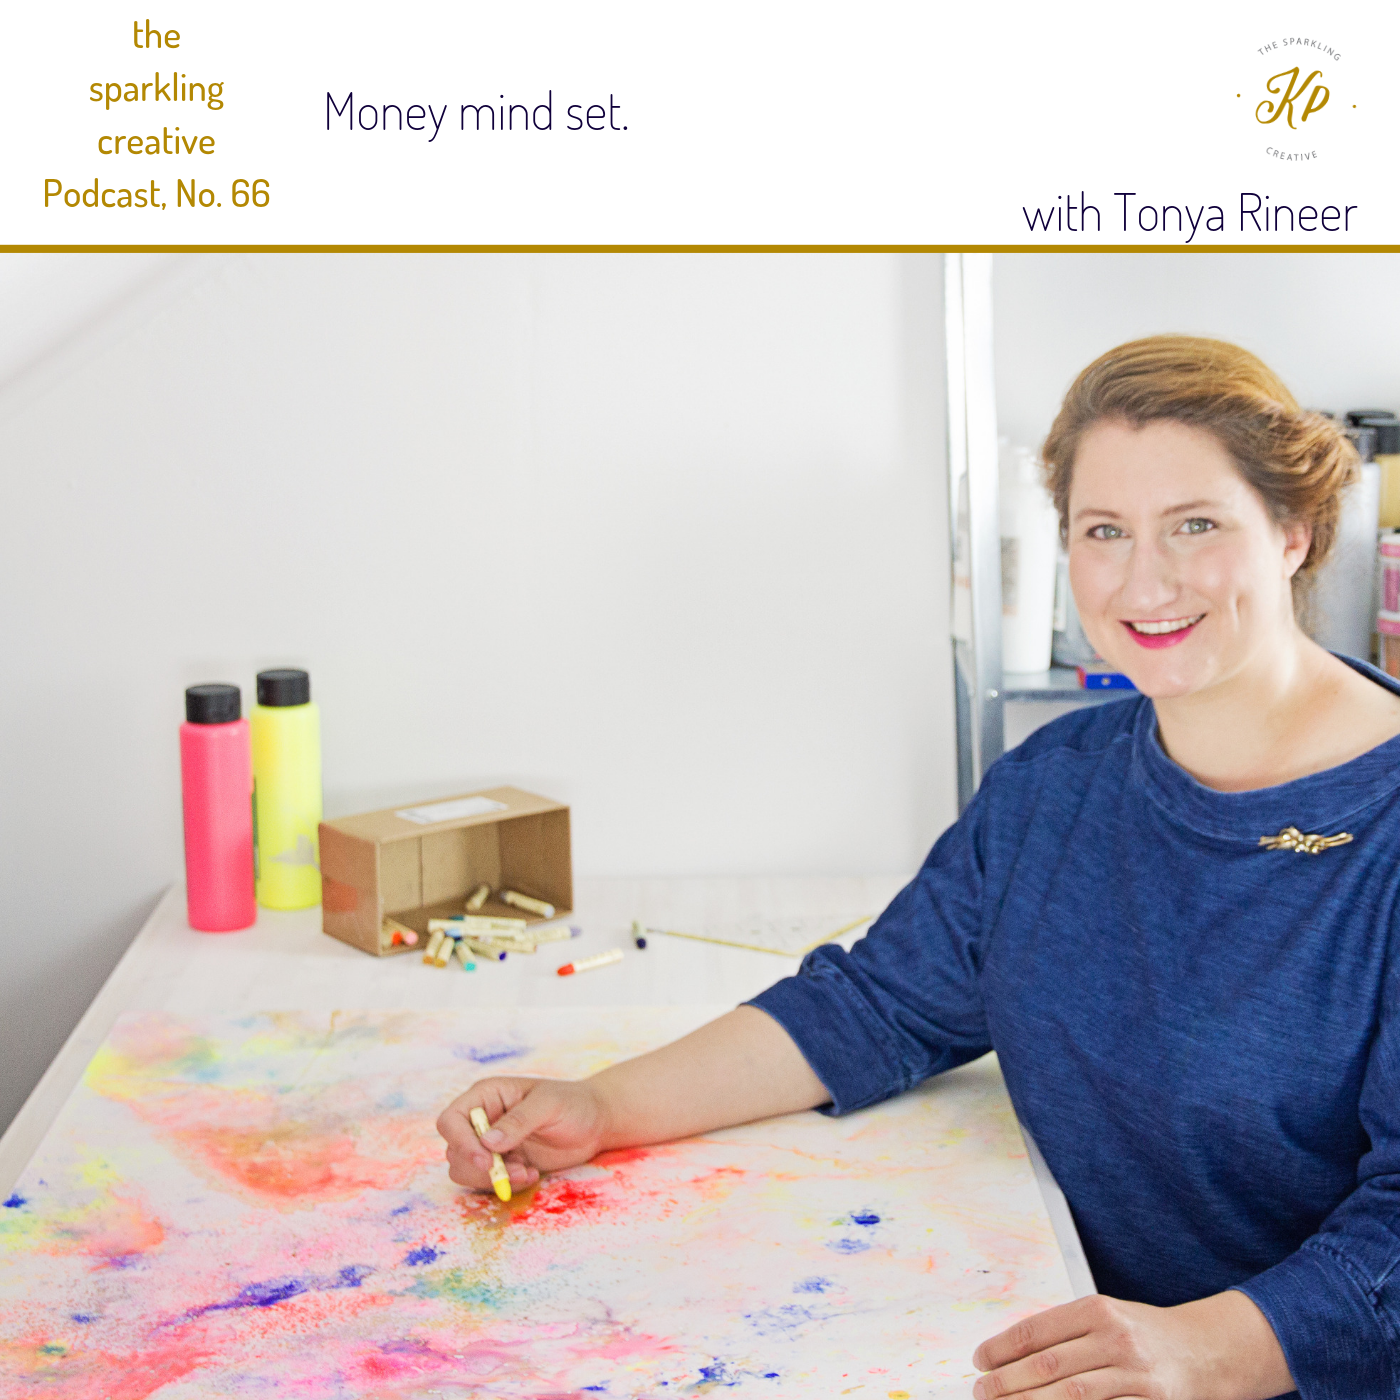 the sparkling creative Podcast, Episode 66: Money mind set – with Tonya Rineer, www.kerstinpressler.com/blog-2/episode66